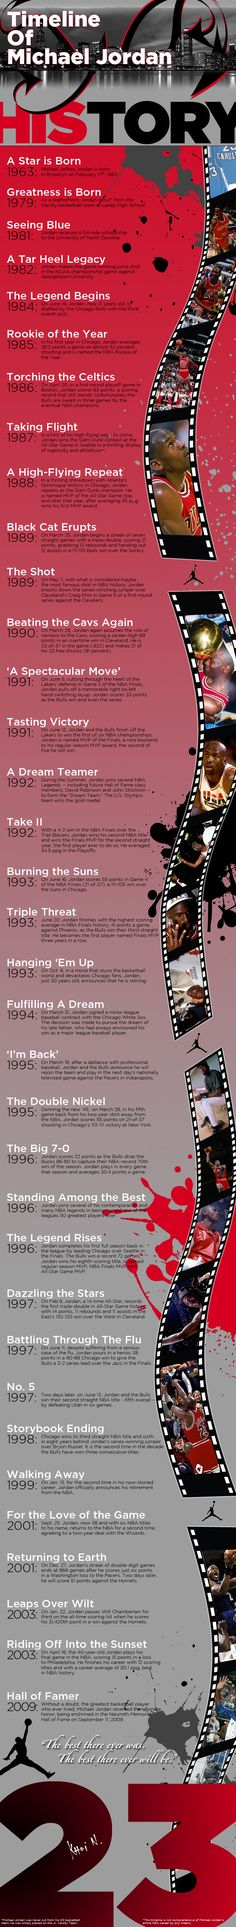 The Timeline of Michael Jordan - Blog About Infographics and Data Visualization - Cool Infographics